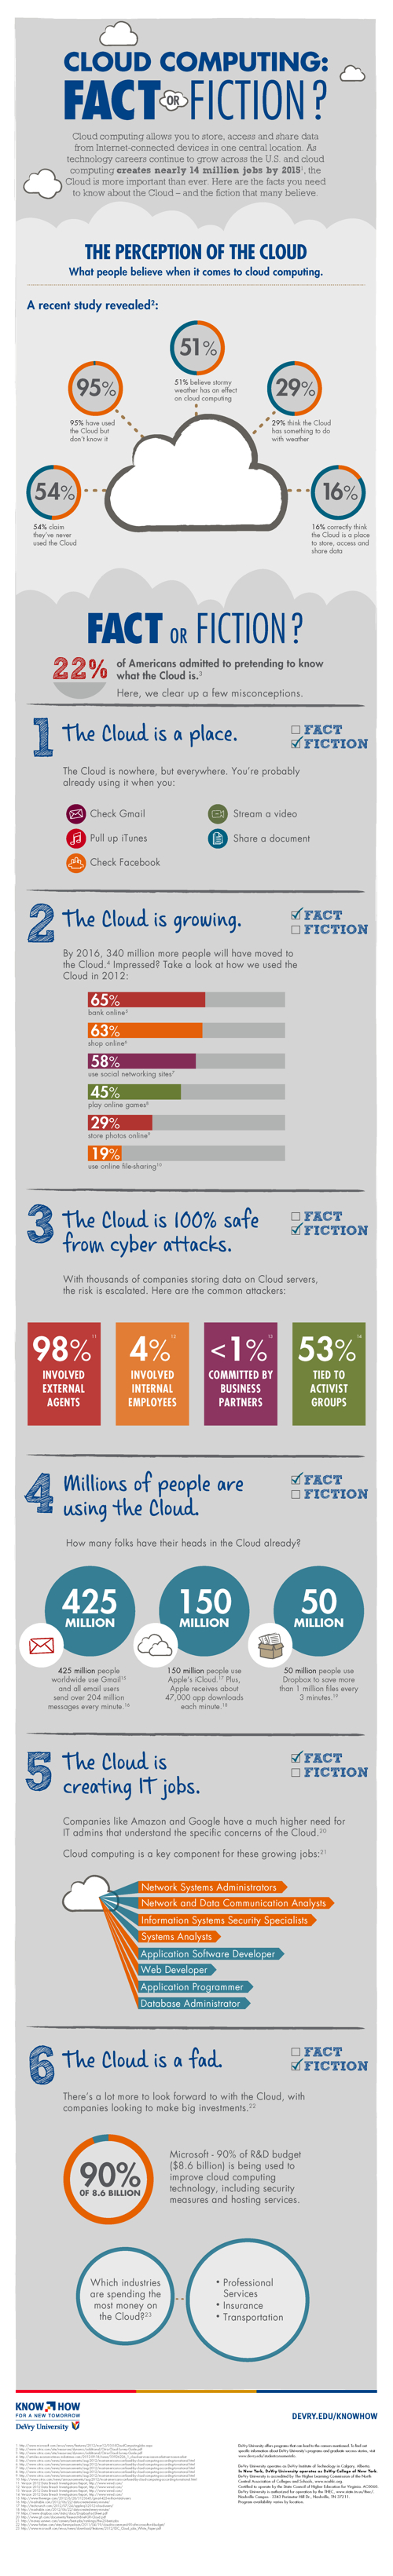 Cloud Computing: Fact or Fiction? infographic